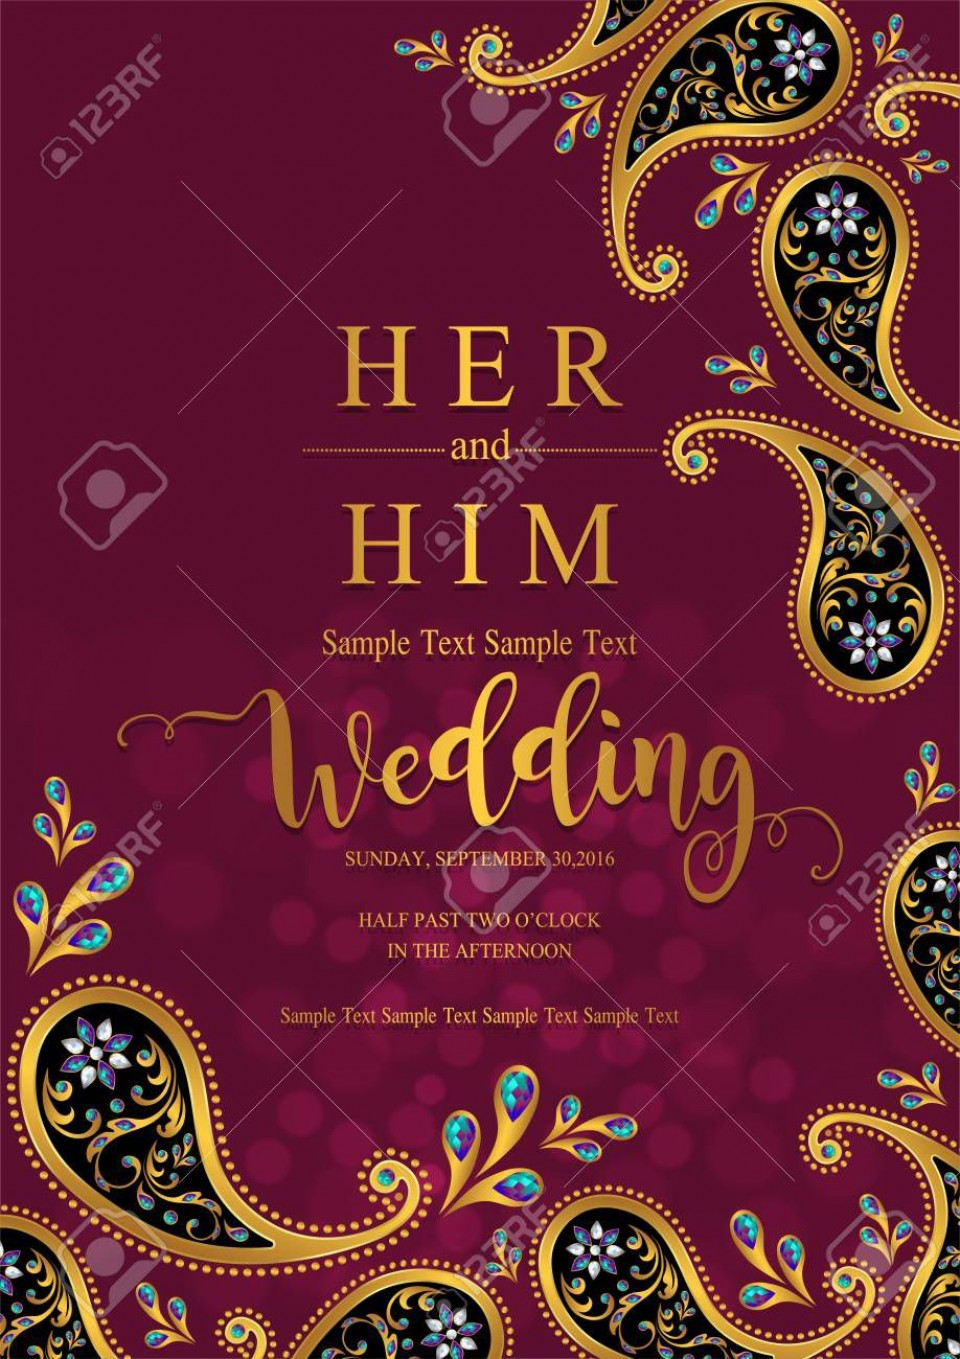 002 Surprising Indian Wedding Invitation Template Highest Quality  Psd Free Download Marriage Online For Friend960